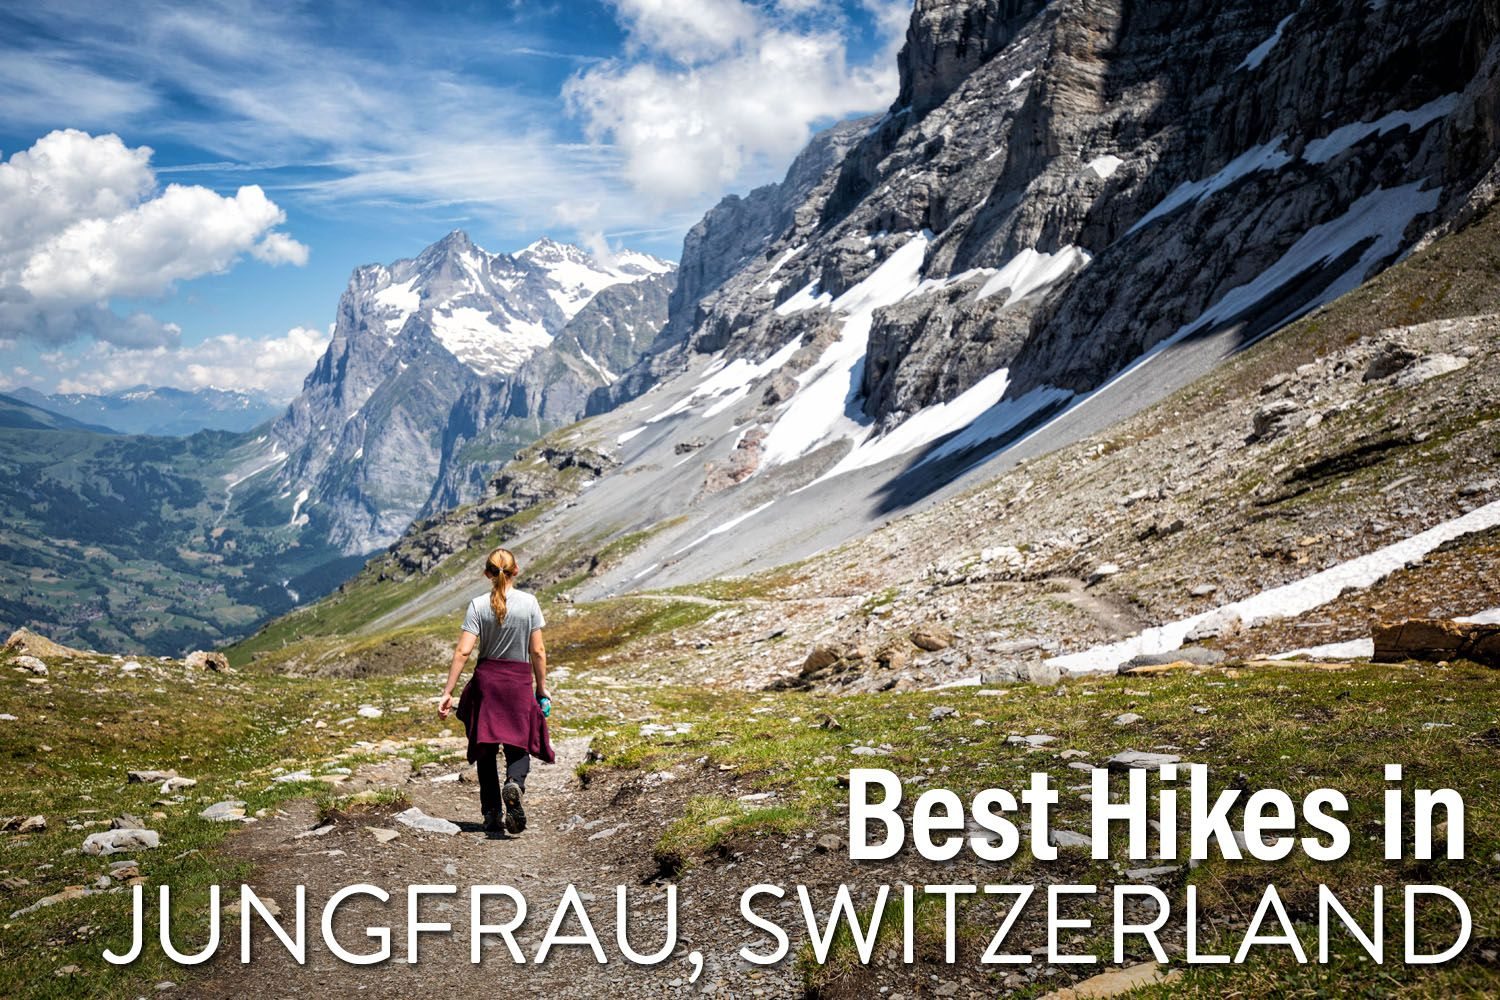 Hikes in Switzerland